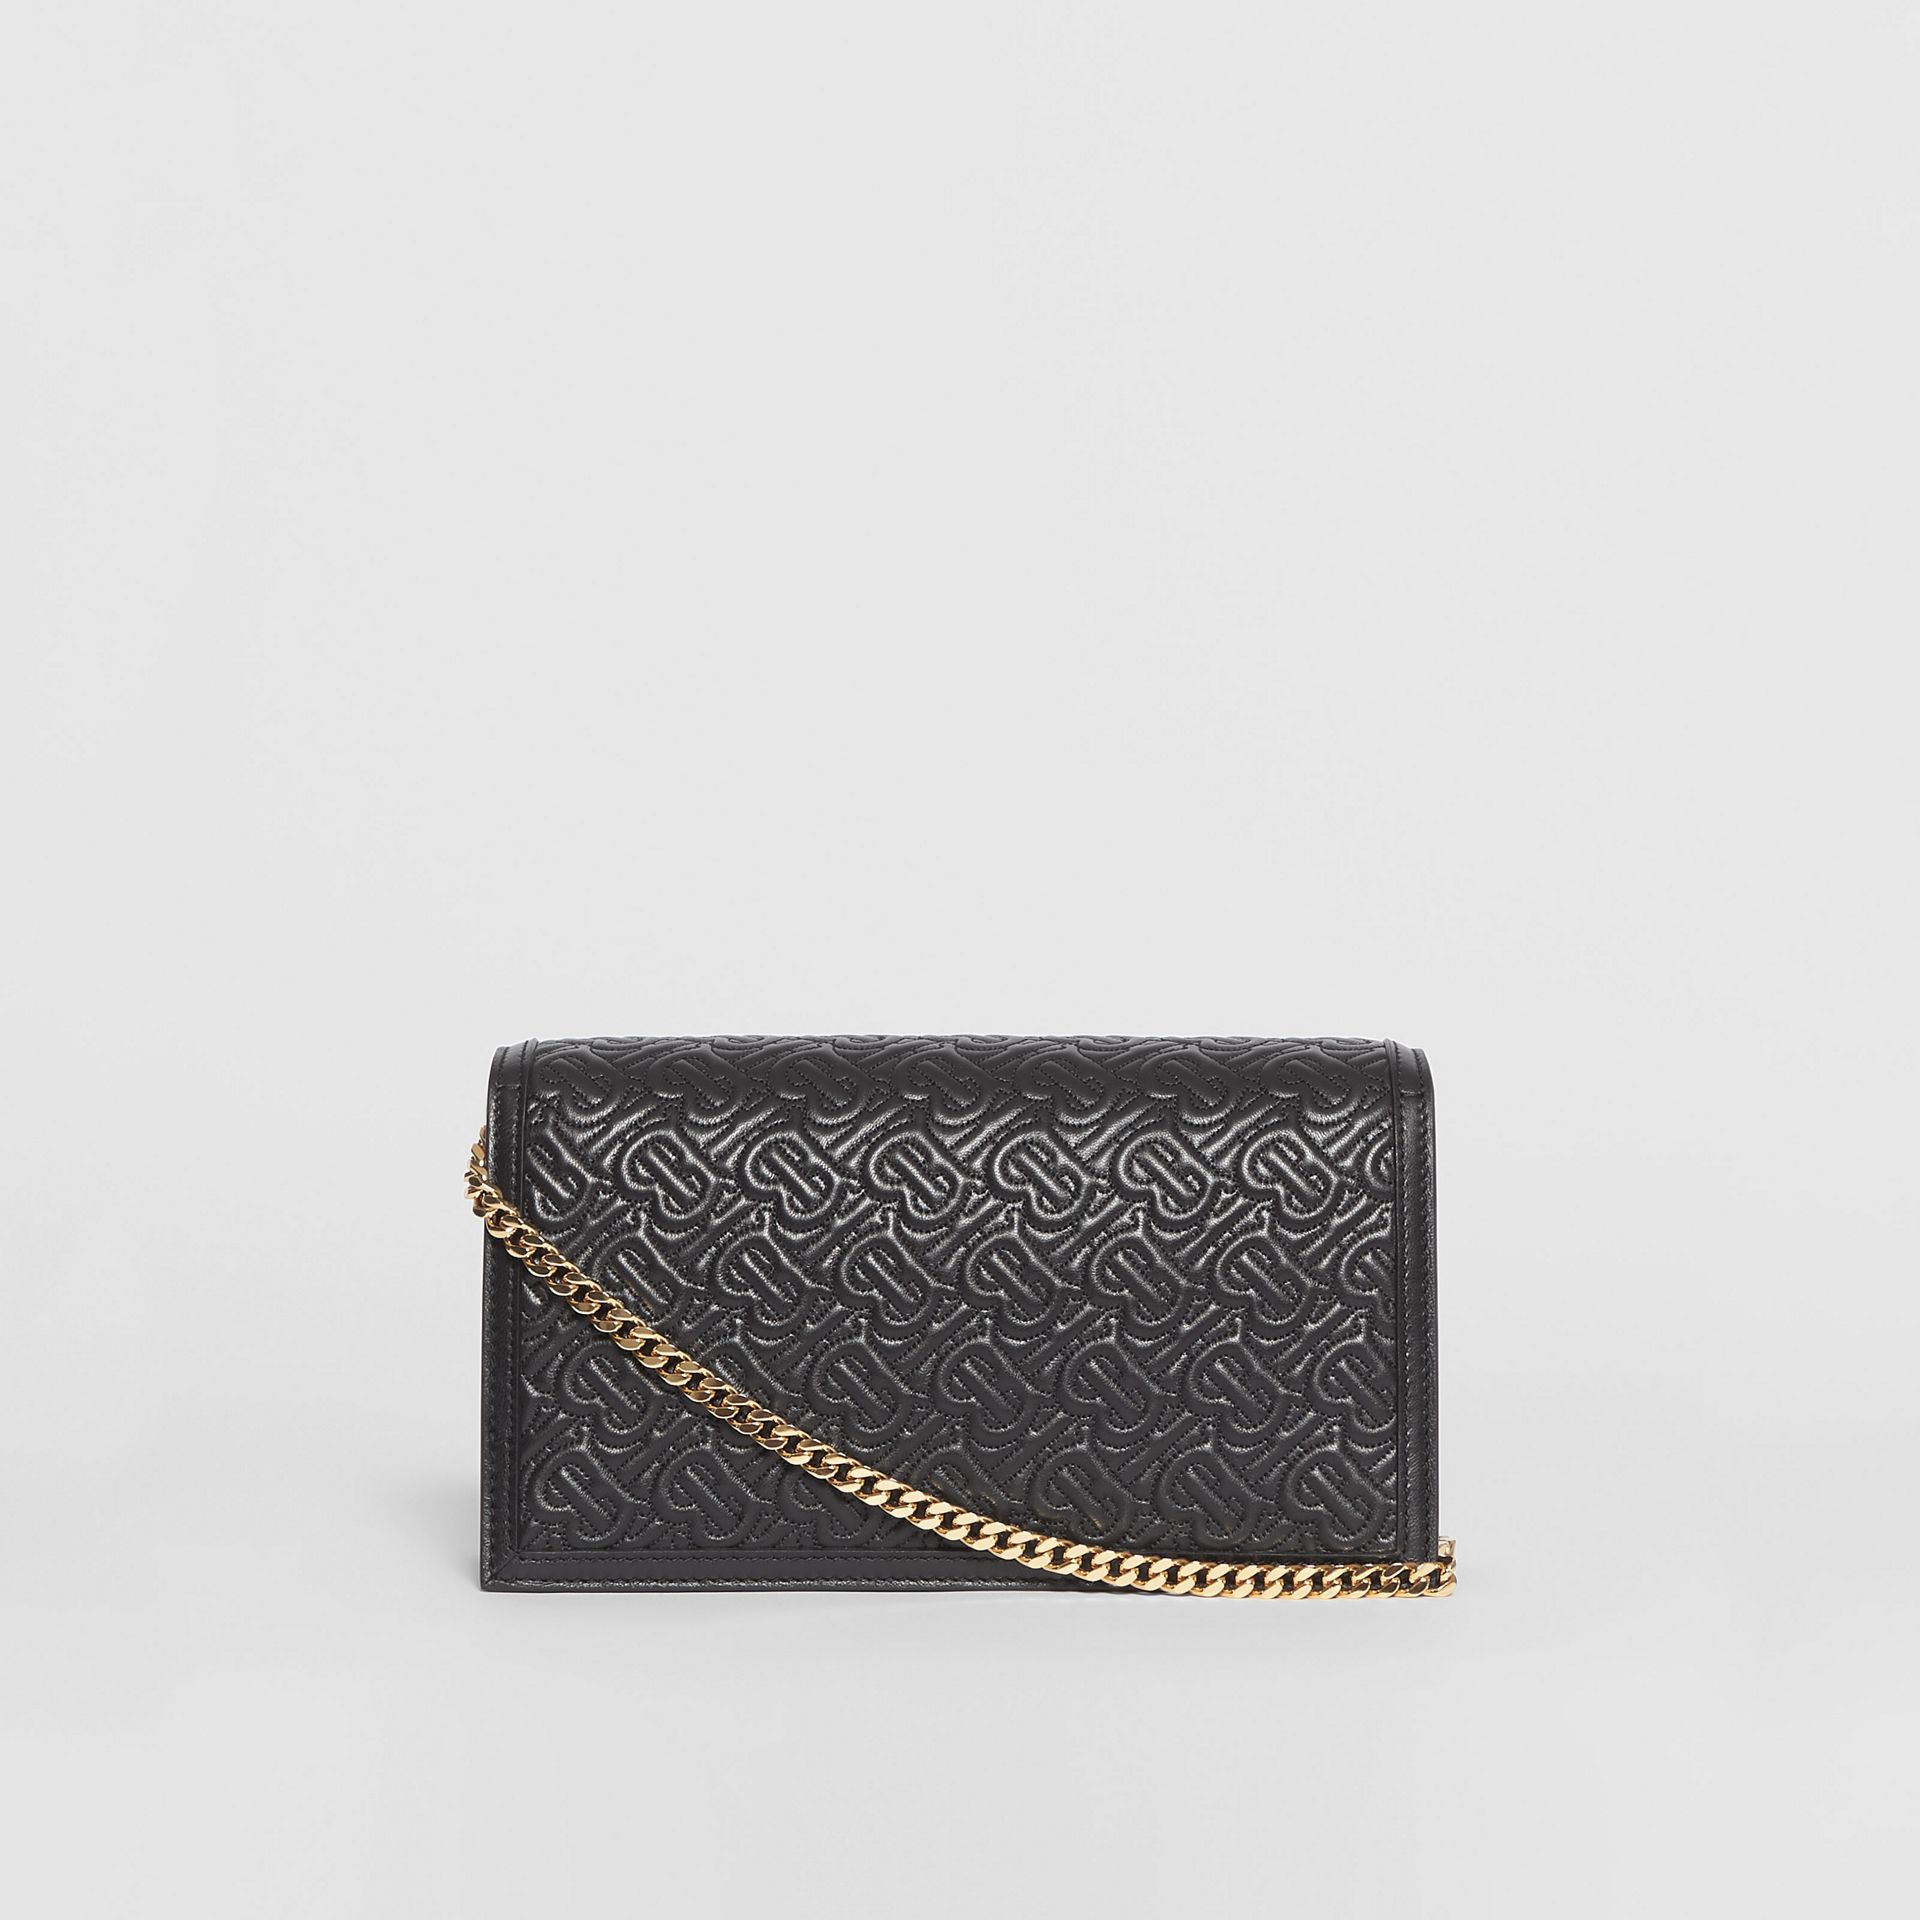 Small Quilted Monogram TB Envelope Clutch in Black - Women | Burberry - gallery image 5